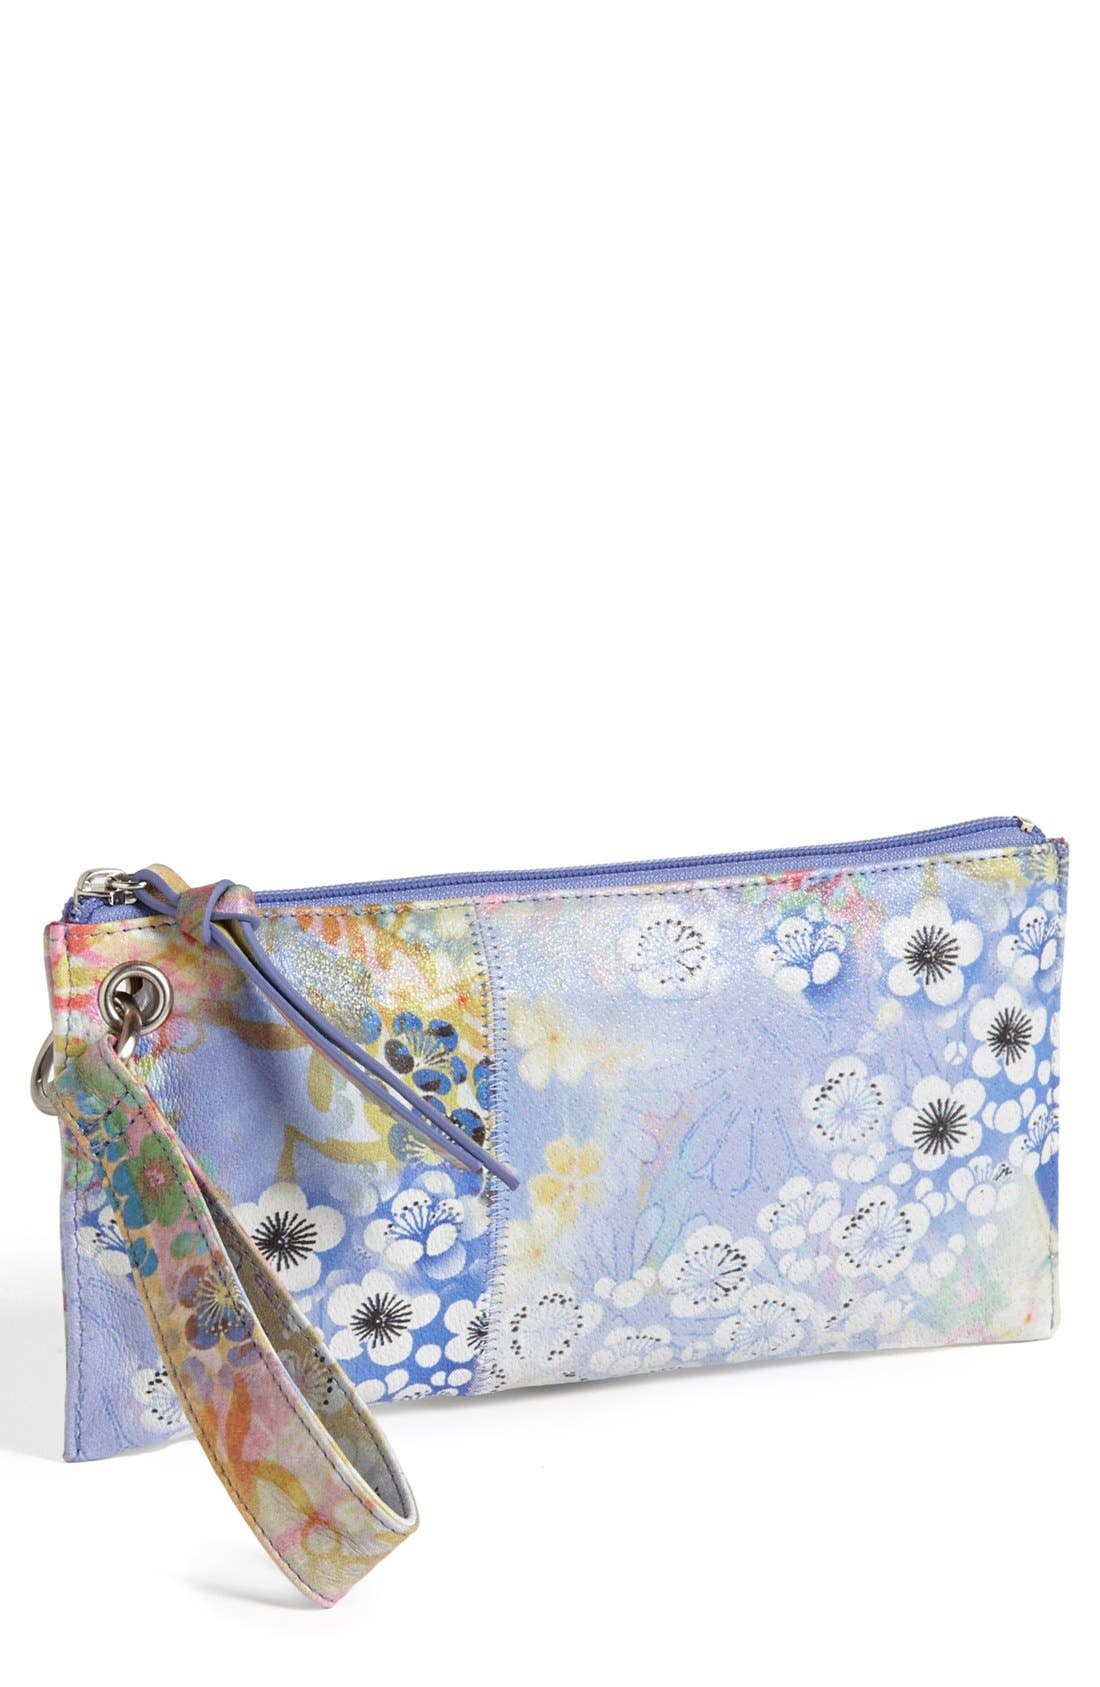 Main Image - Hobo 'Vida' Leather Clutch